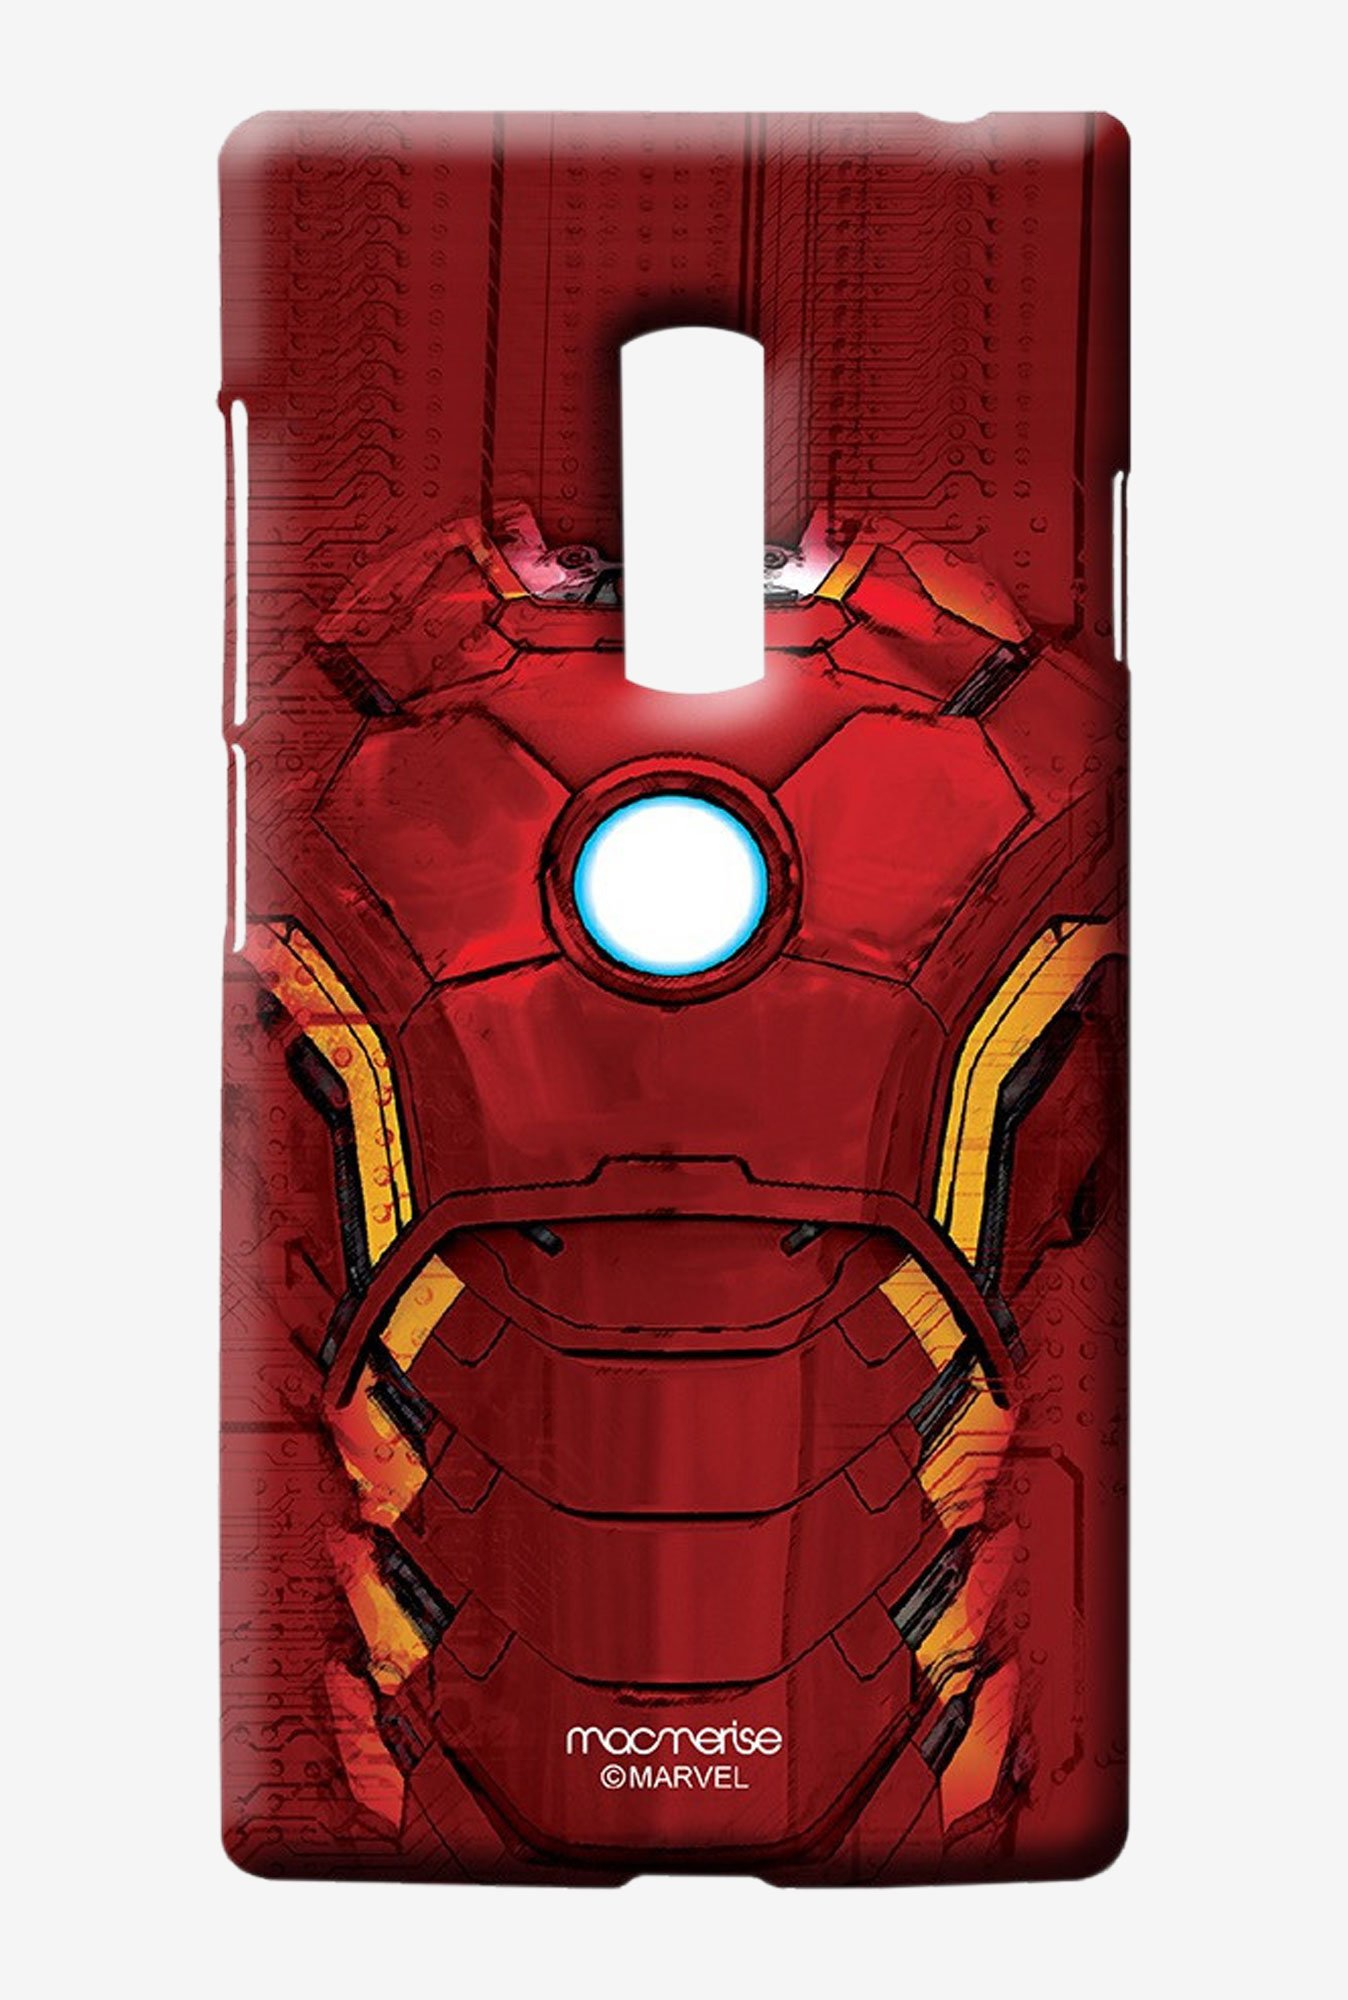 Macmerise Suit of Armour Sublime Case for Oneplus Two